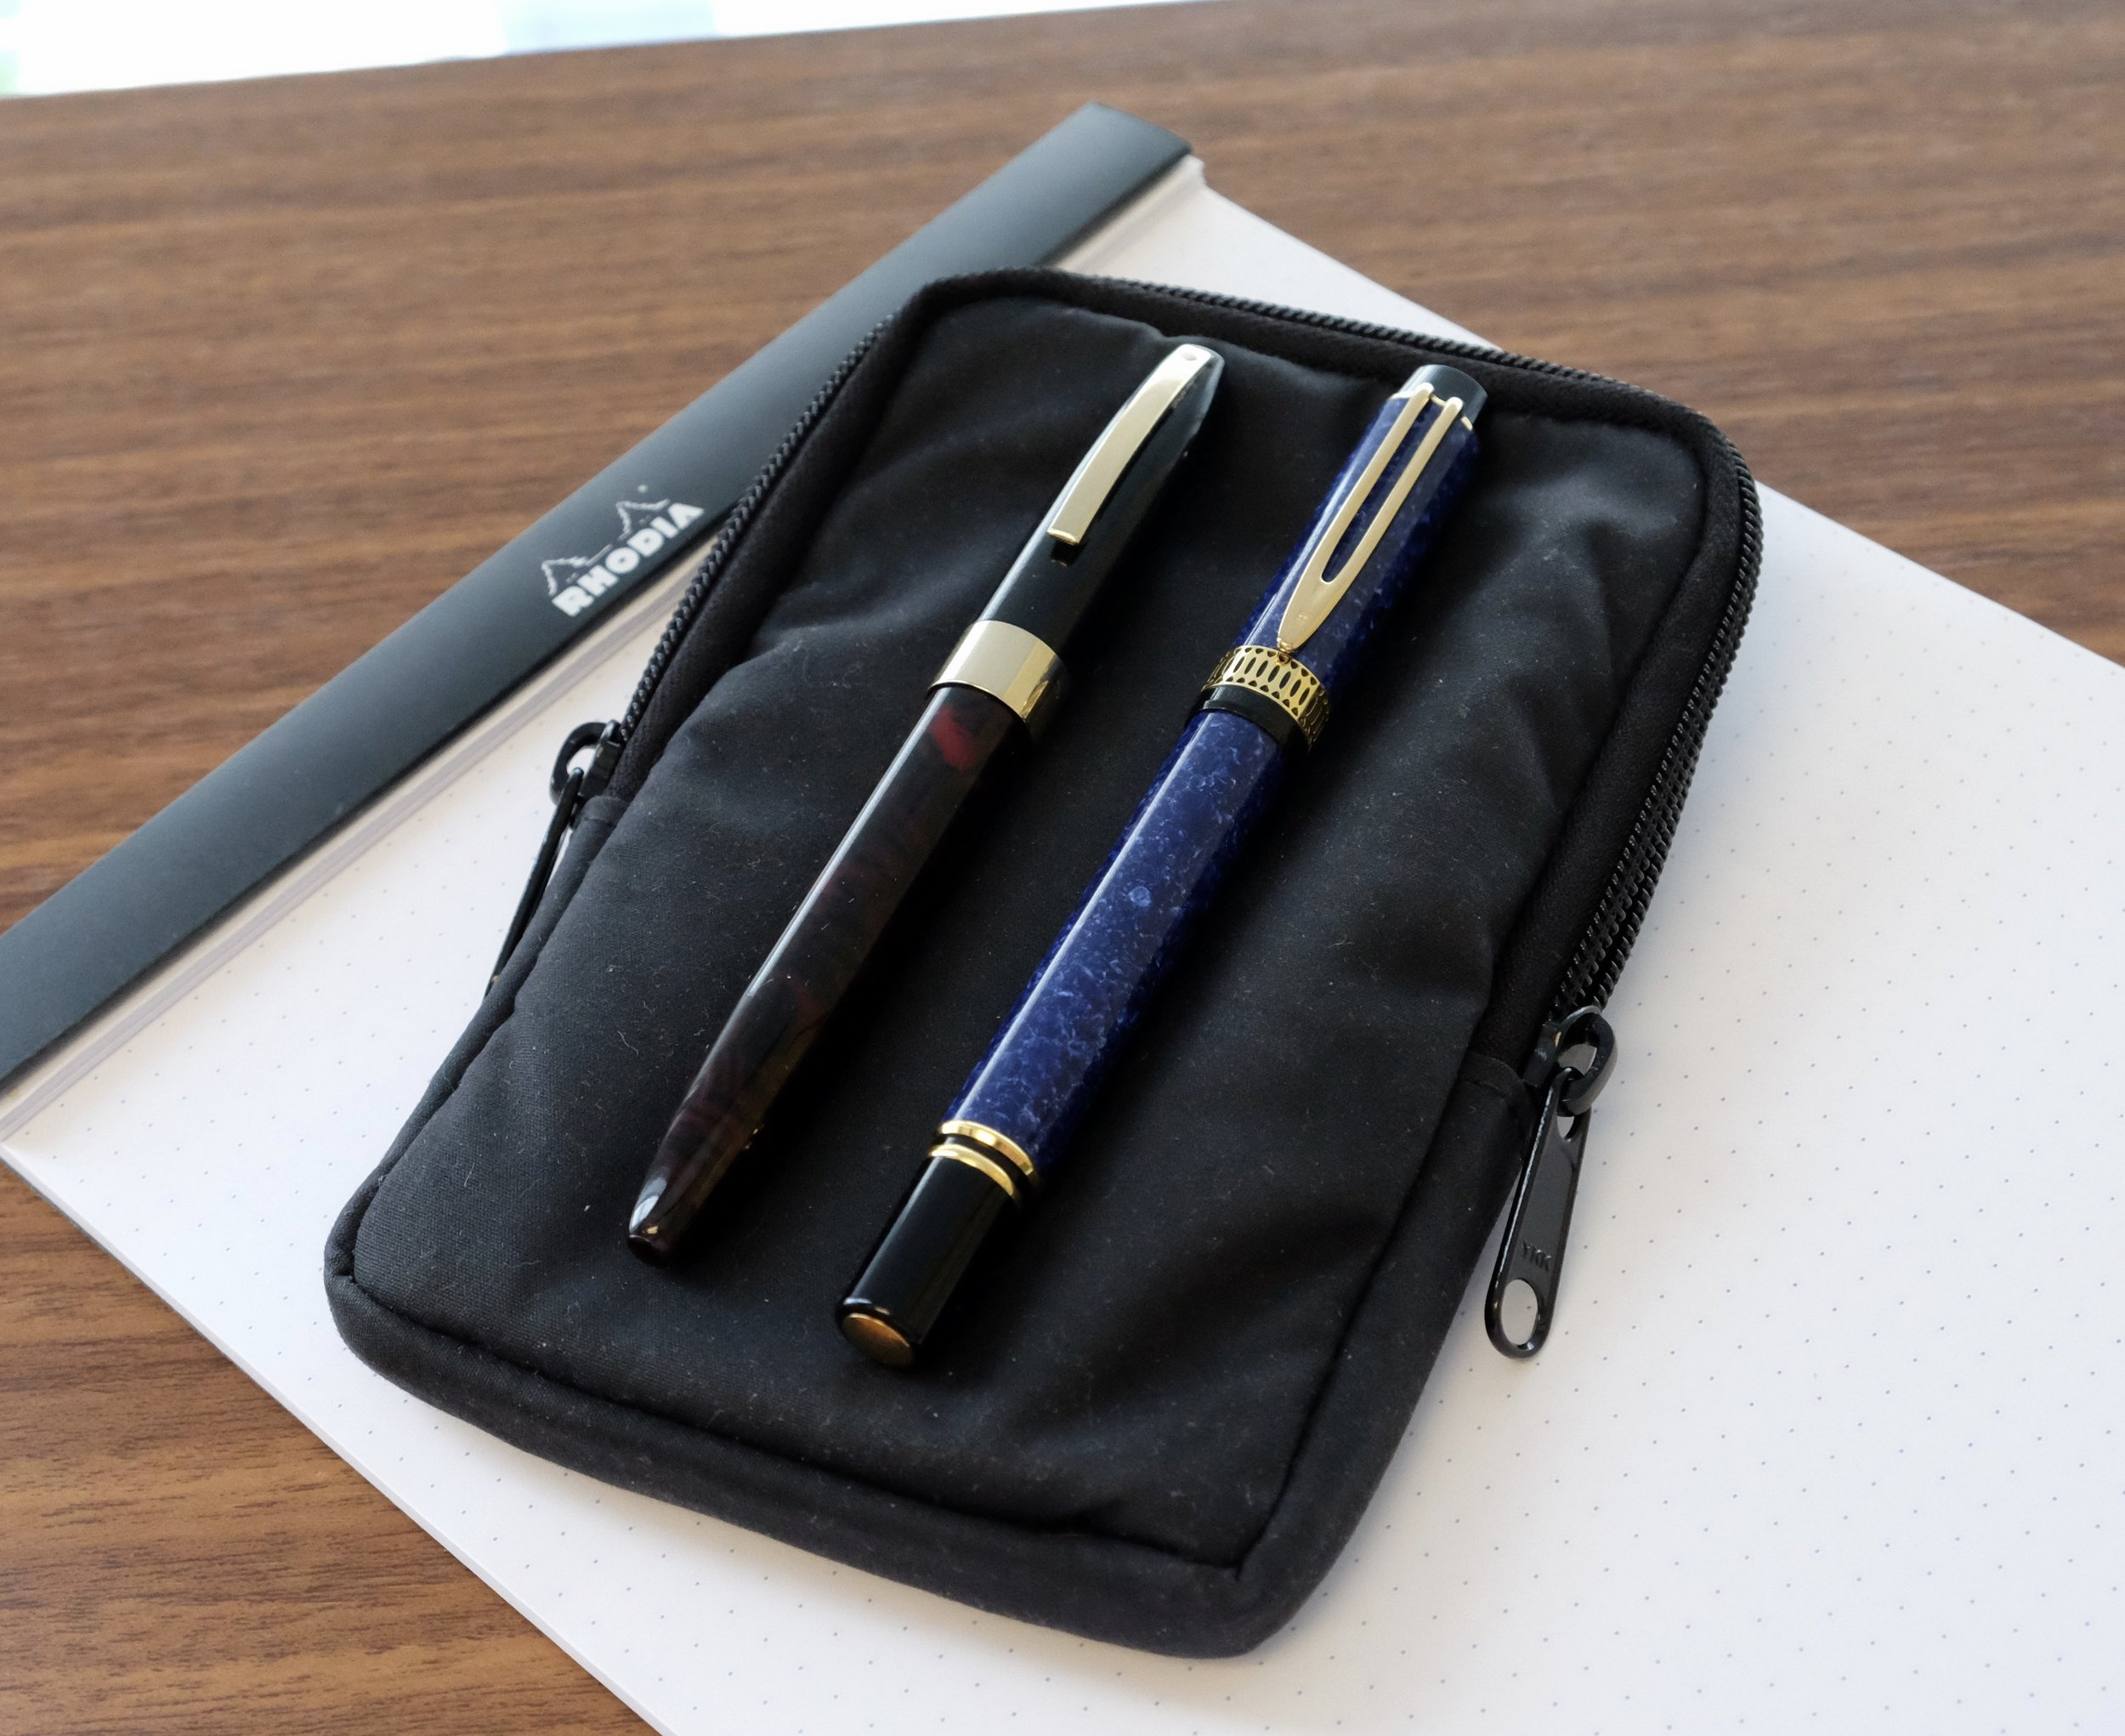 My two 2017 Atlanta Pen Show Takeaways: A Sheaffer Legacy Heritage (left) and a Waterman Patrician in Lapis Blue (Right).